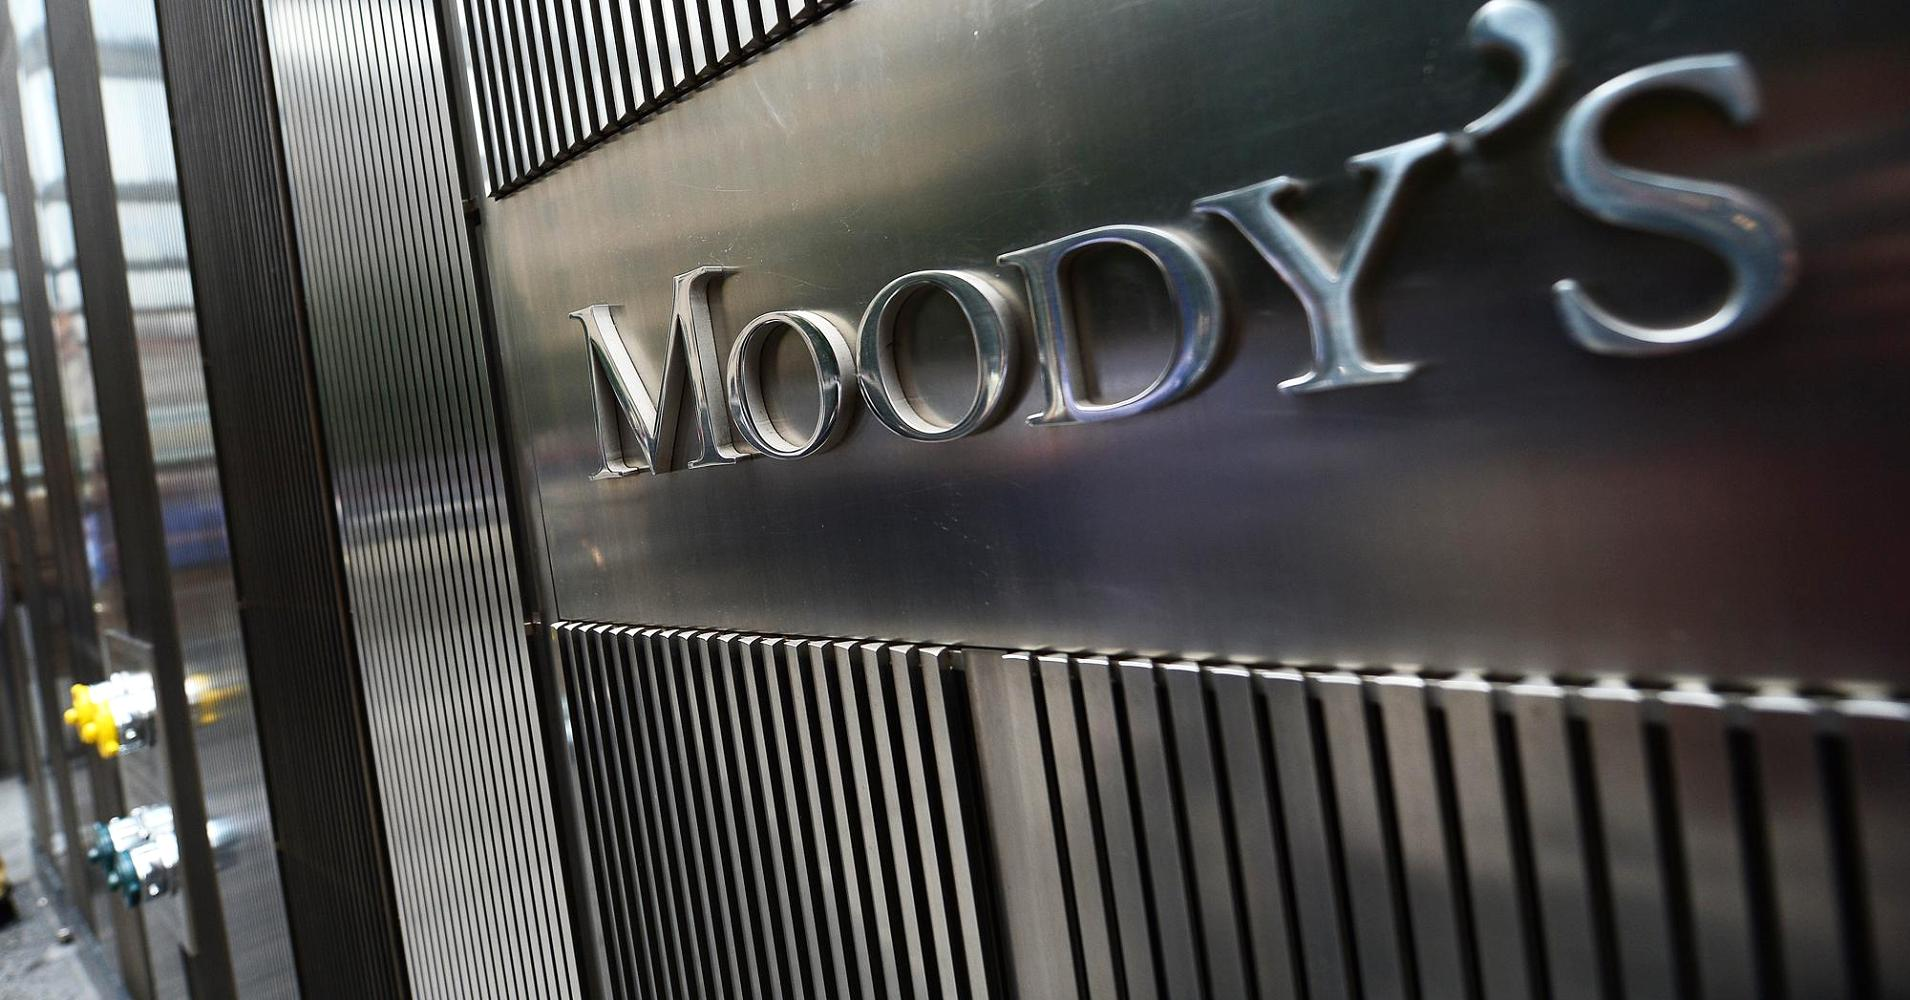 Moody's takes negative rating actions on eight Mongolian banks following sovereign downgrade